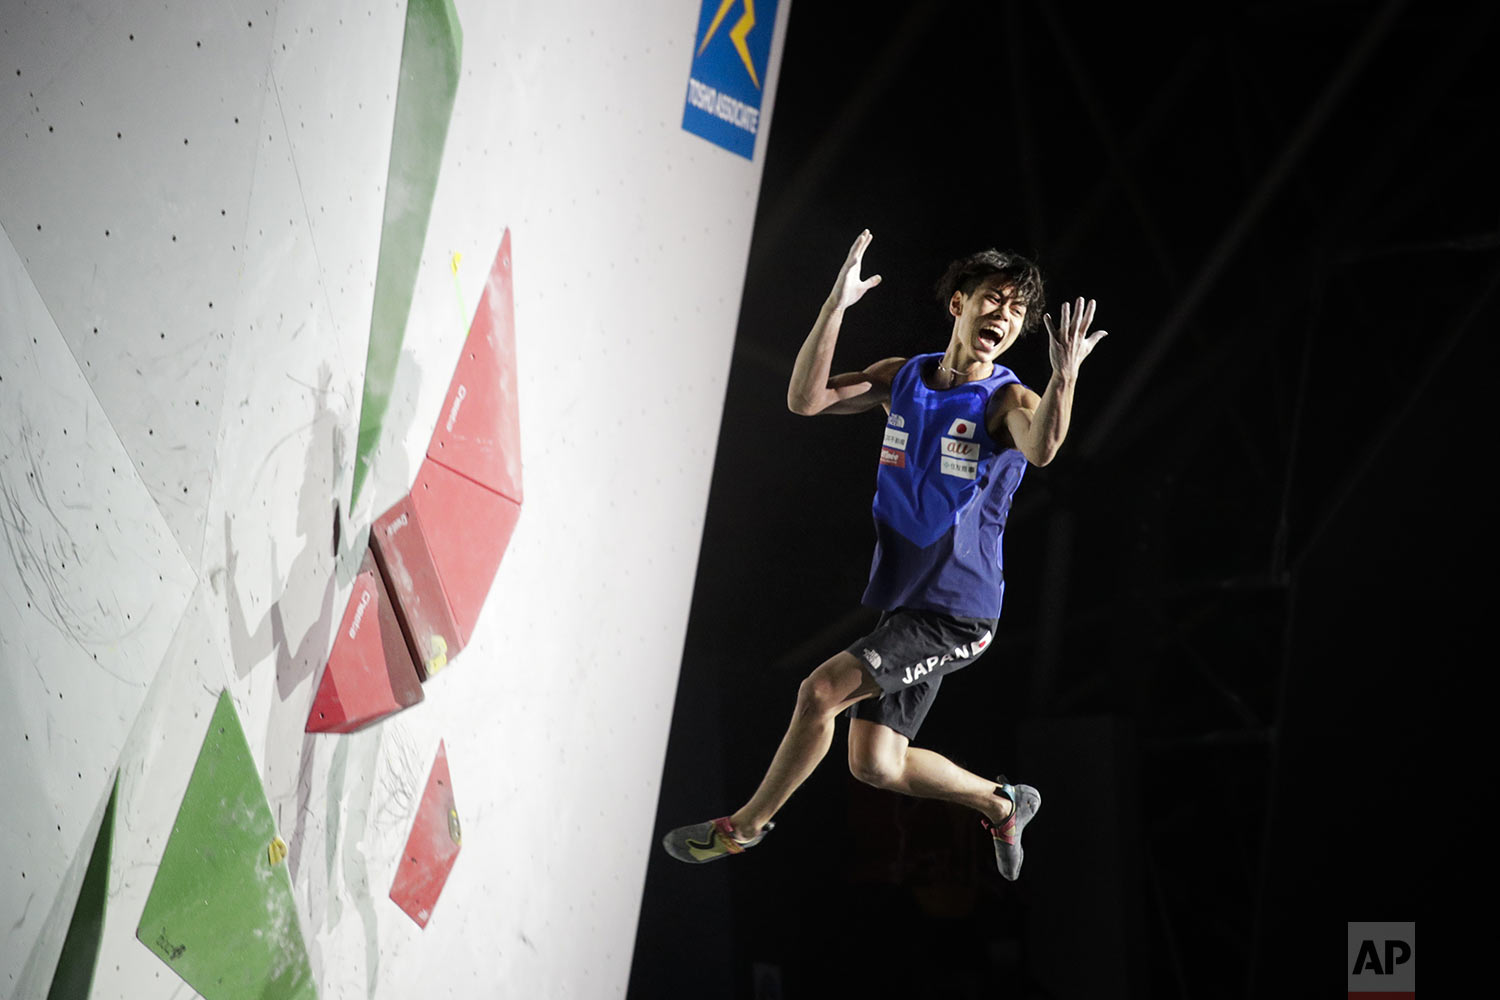 Kai Harada, of Japan, reacts as he falls from a bouldering wall during the men's combined bouldering final at the International Federation of Sport Climbing World Championships, in Tokyo, Wednesday, Aug. 21, 2019. (AP Photo/Jae C. Hong)